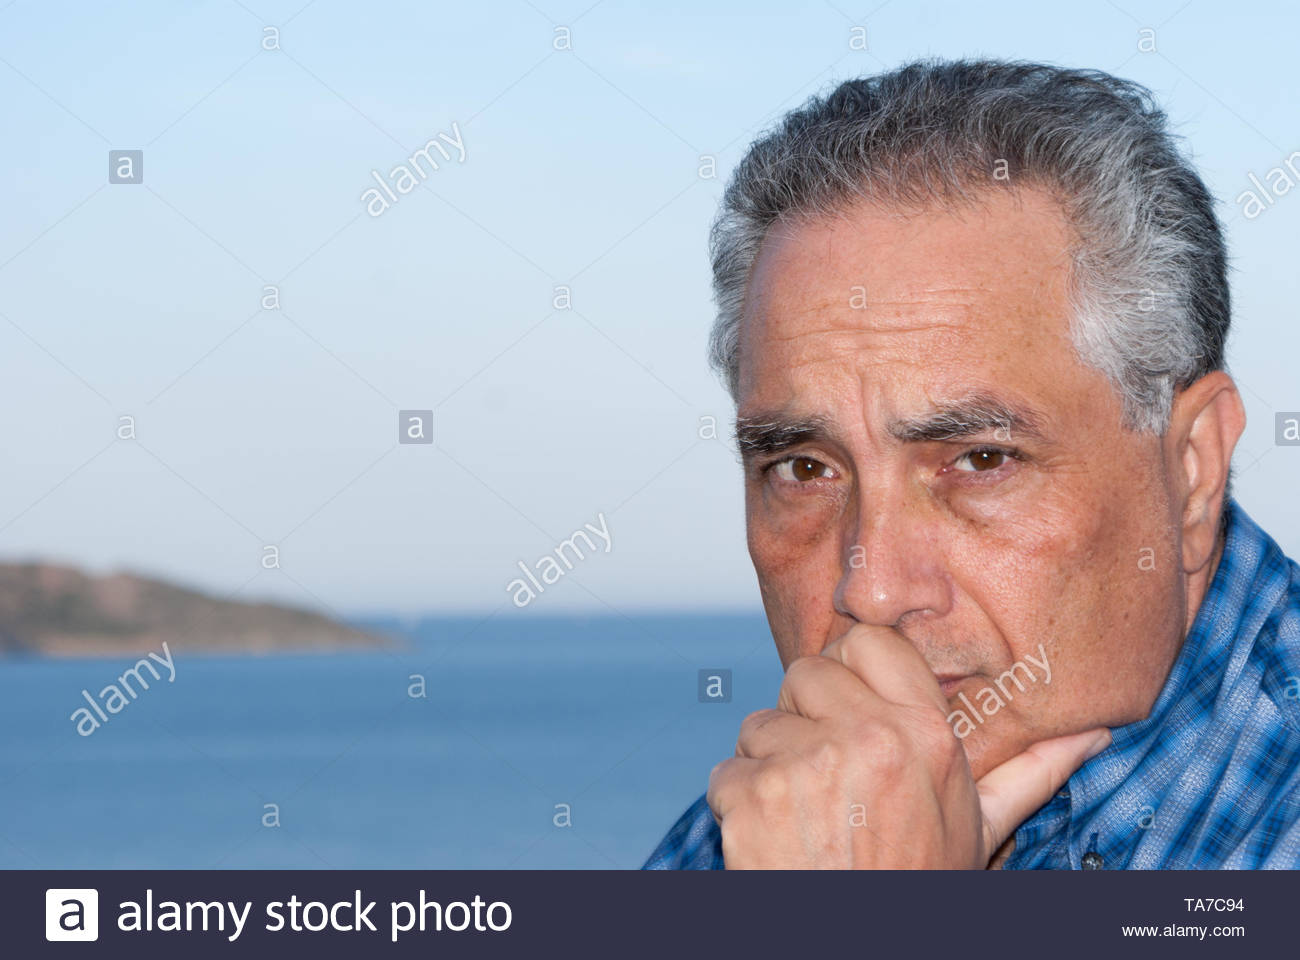 Man thinking and contemplating - Stock Image